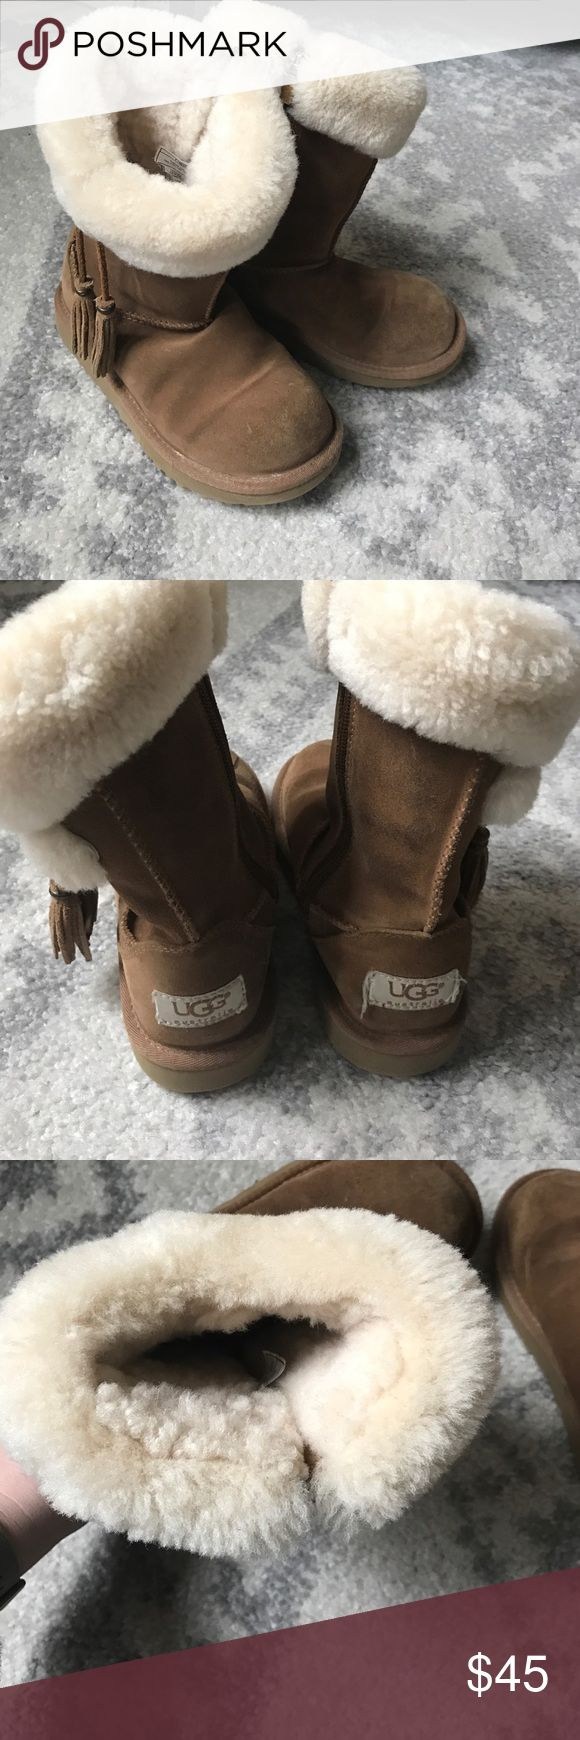 size 0 ugg boots